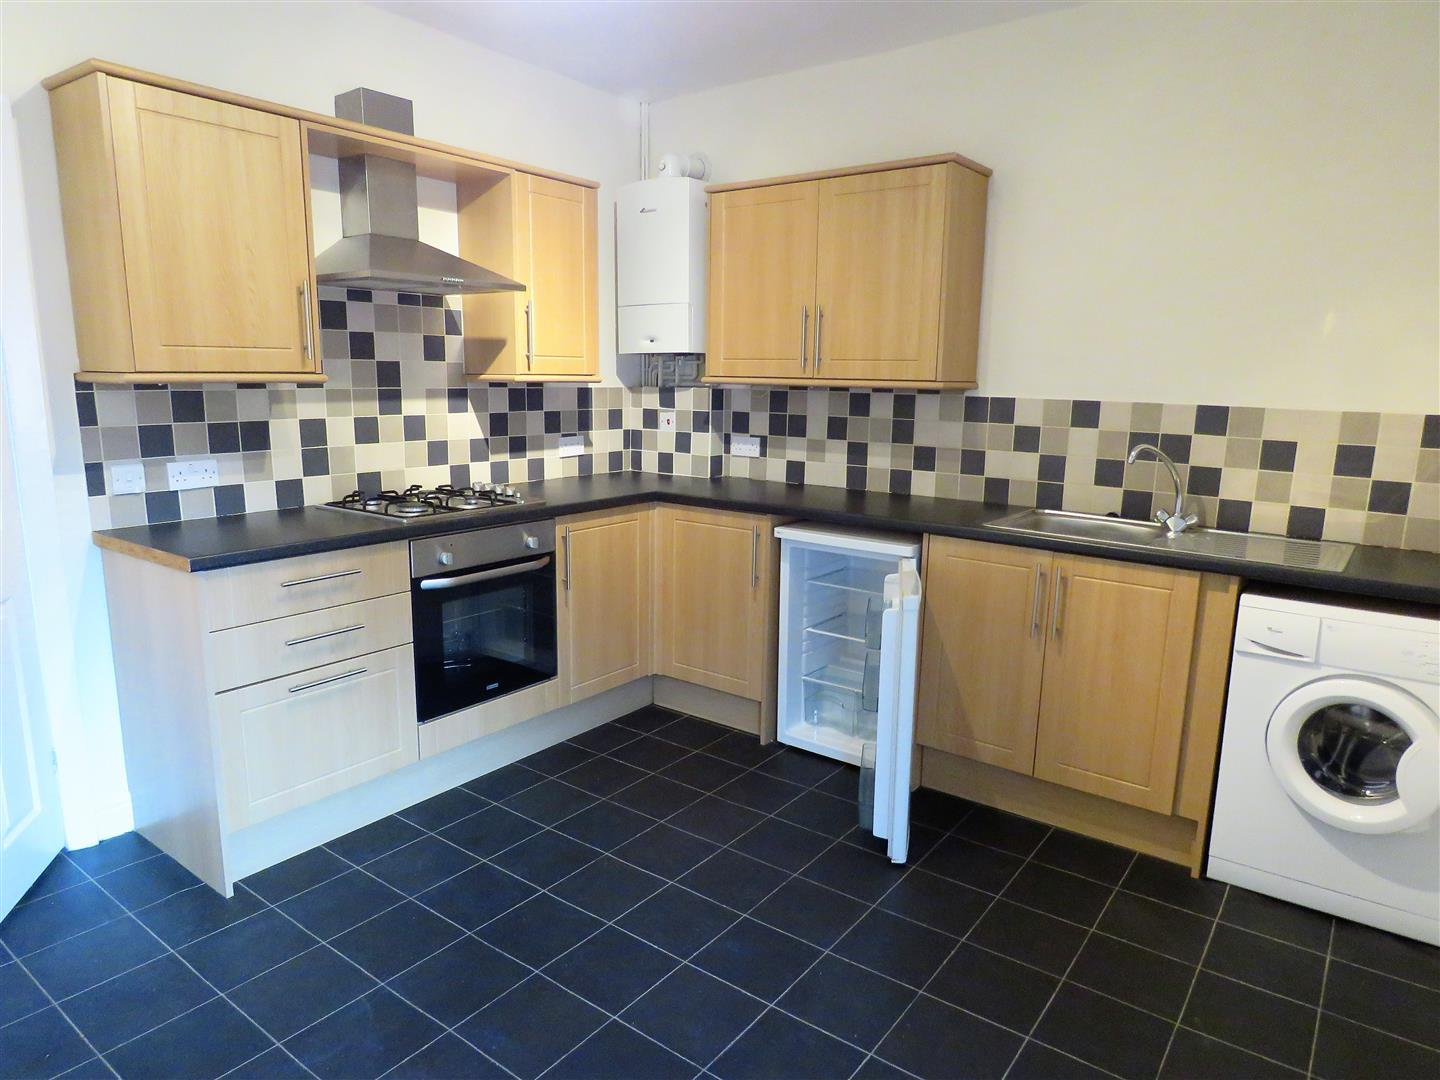 middlewood rd, 283a kitch.jpg